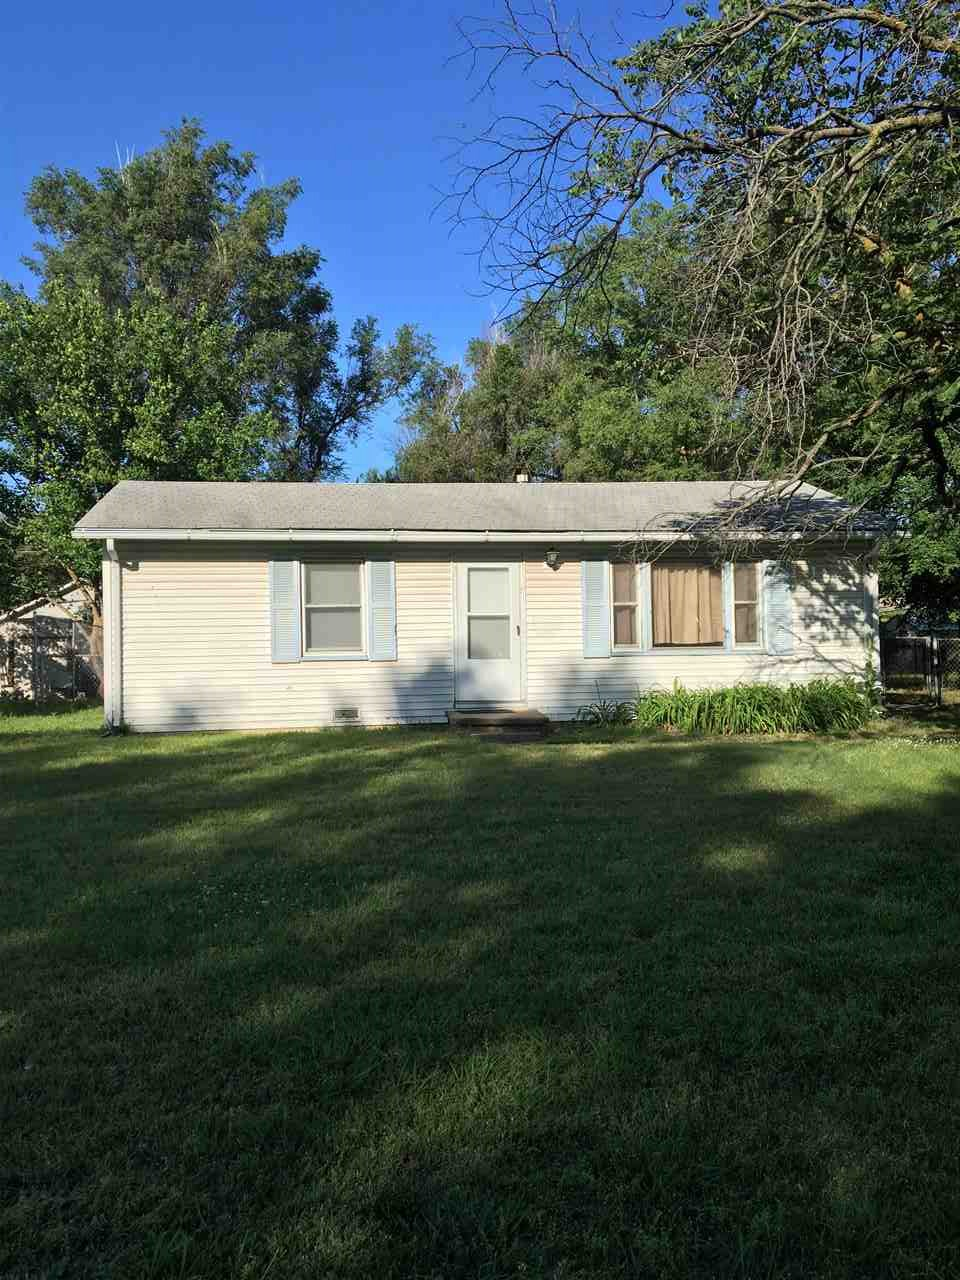 Perfect for  Investors  or 1st time home buyer. Exterior has vinyl siding and replacement windows th